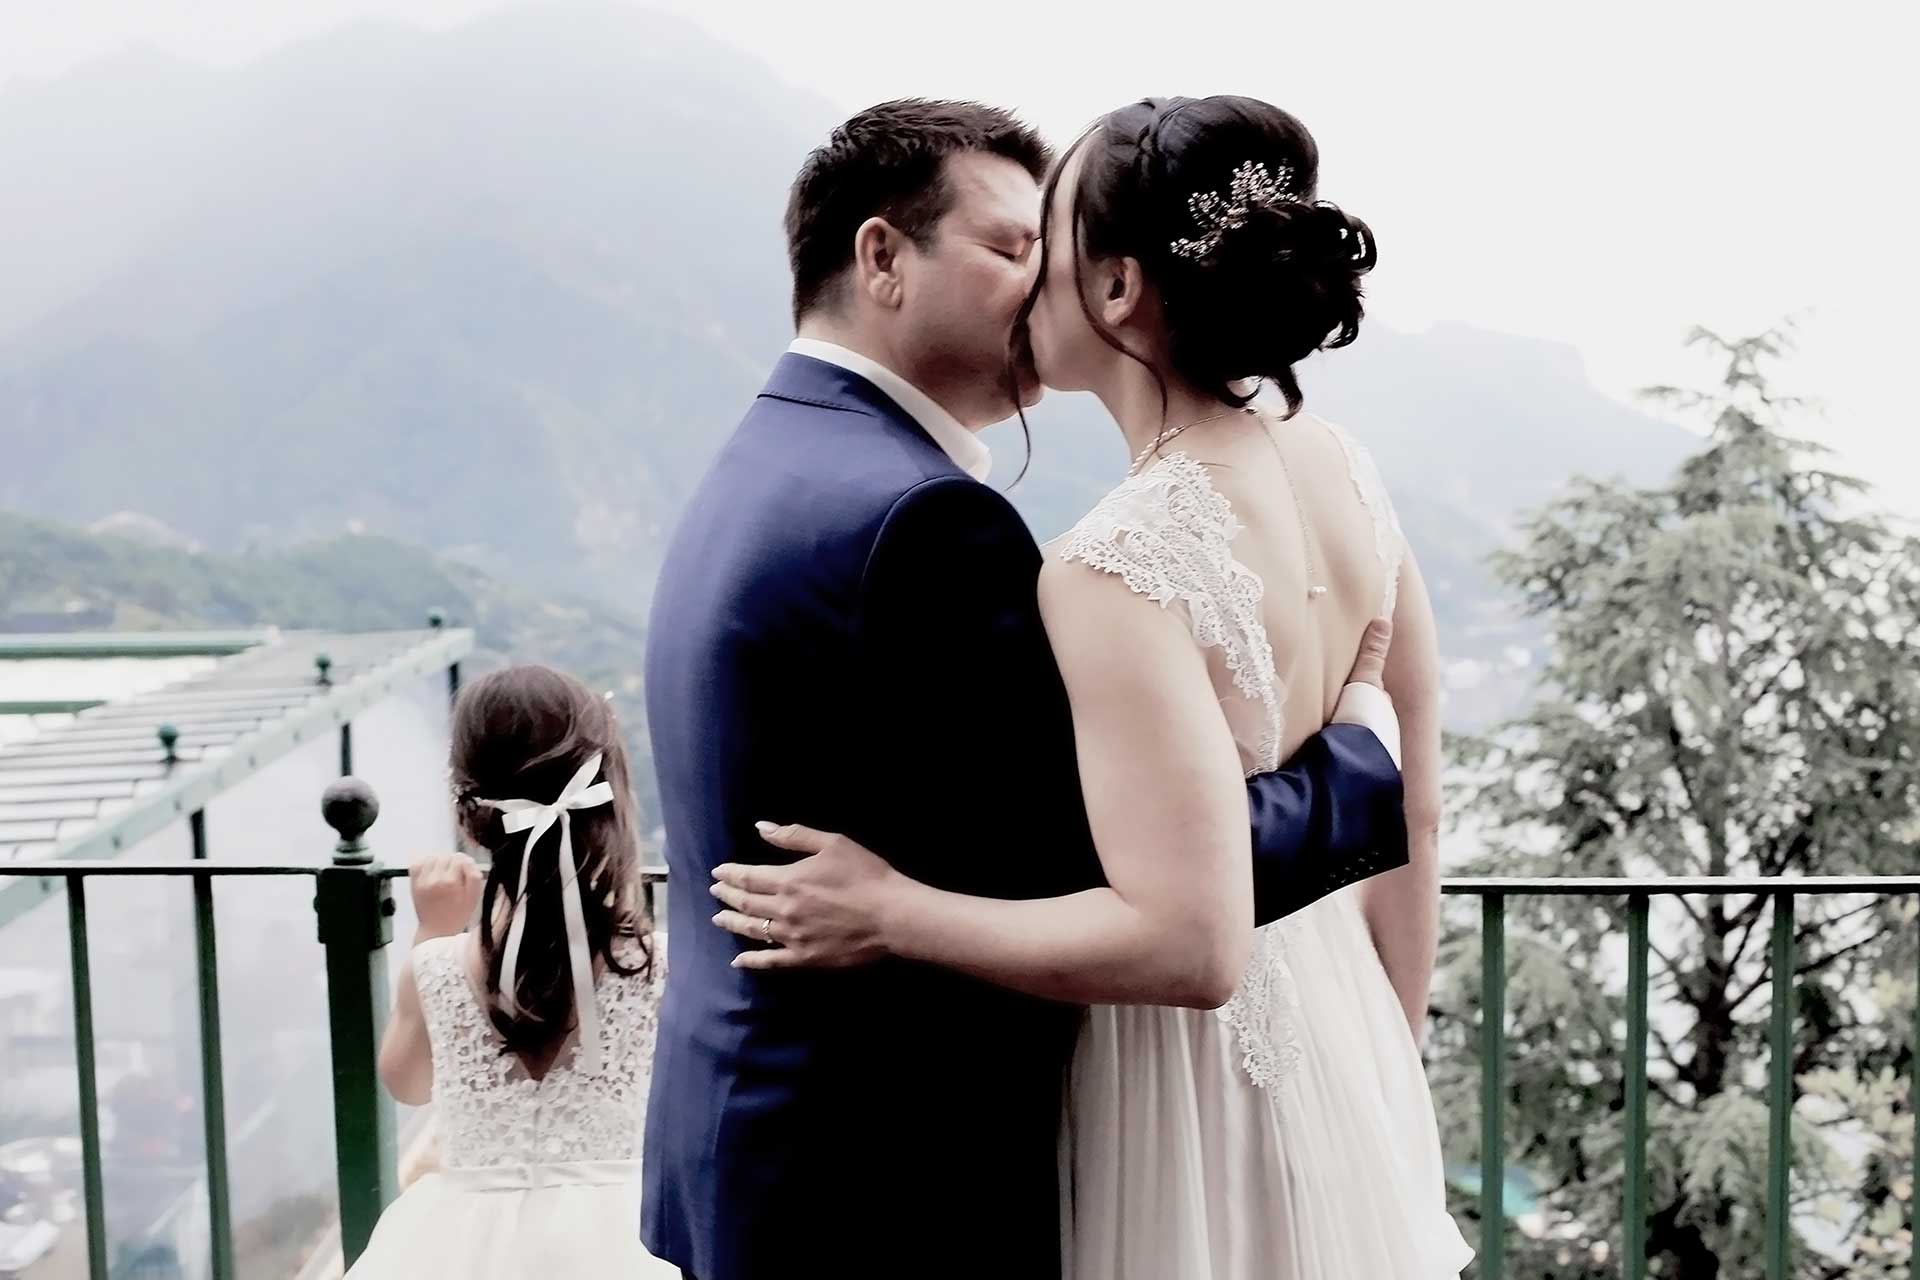 Civil Wedding in Ravello Giardini della Principessa di Piemonte Ravello Hotel Fraulo Terrace Views Reception Location Amalfi Coast Claudia Francese Photography